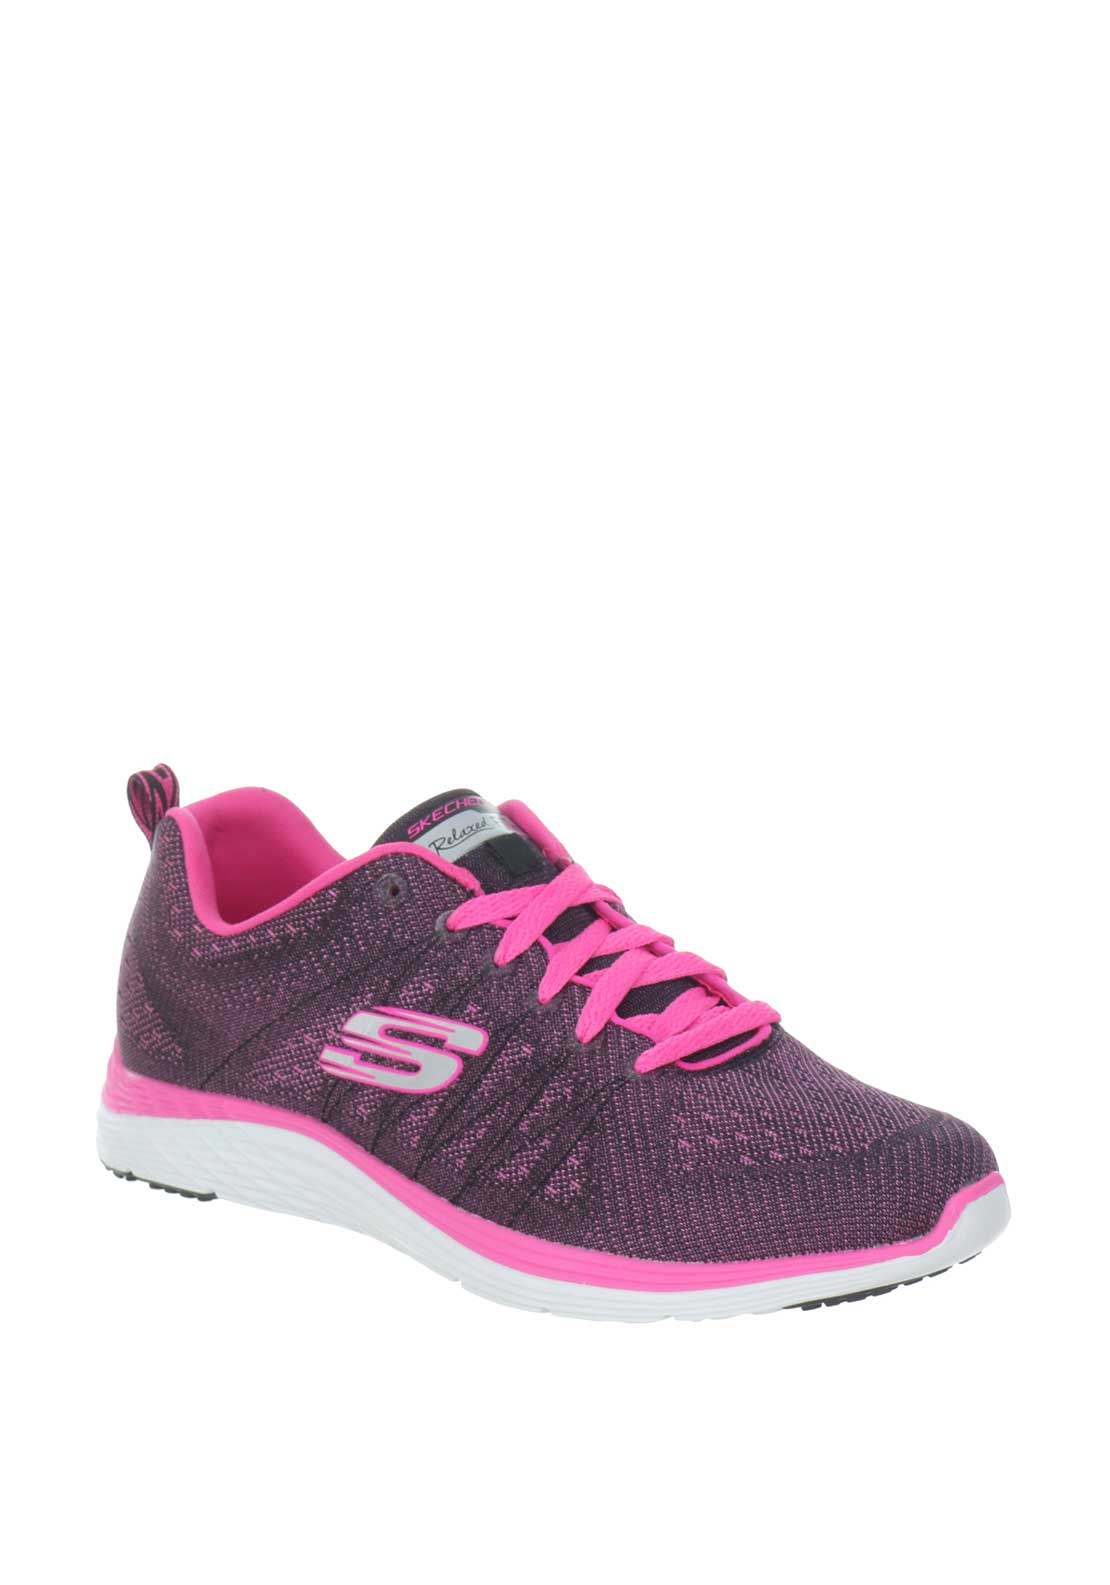 Skechers Womens Relaxed Fit Knit Trainers Pink   McElhinneys